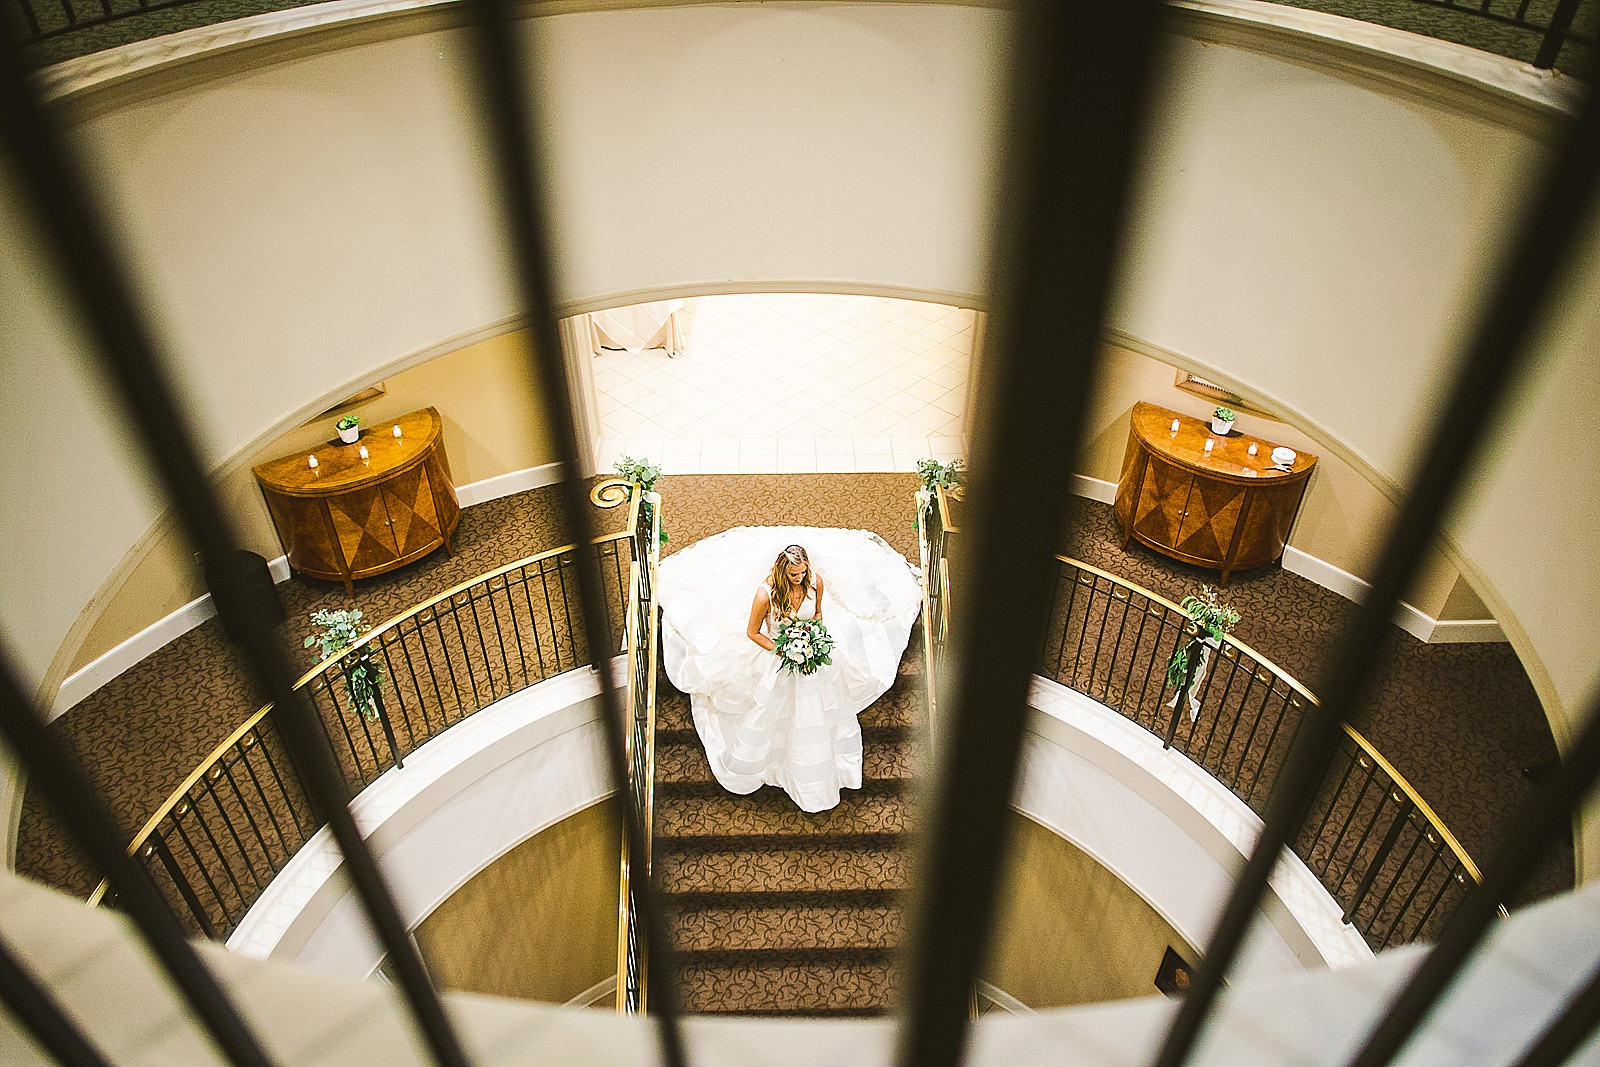 43 amazing wedding photos in cihcago - The Glen Club Wedding Photos // Katie + Nick